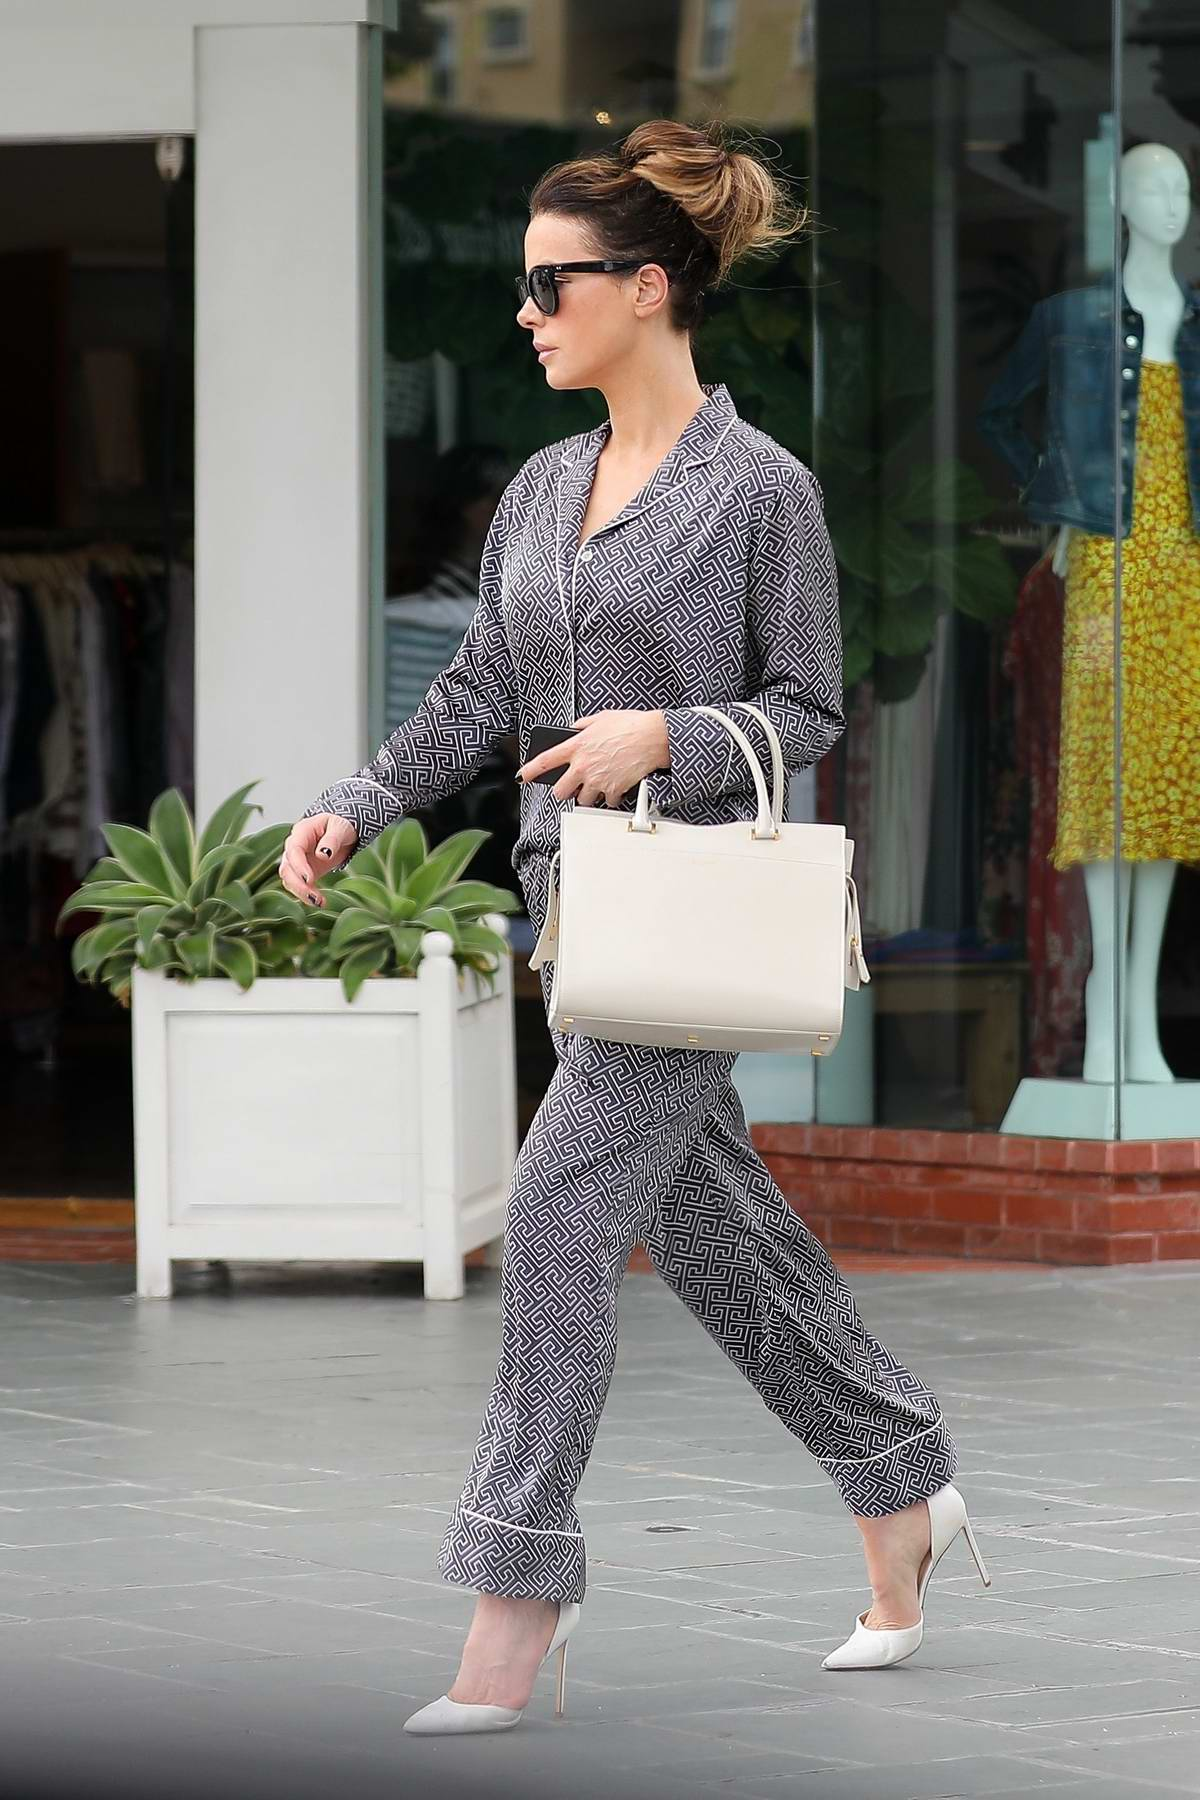 Kate Beckinsale seen wearing pajama-like ensemble while on a shopping trip in Brentwood, Los Angeles